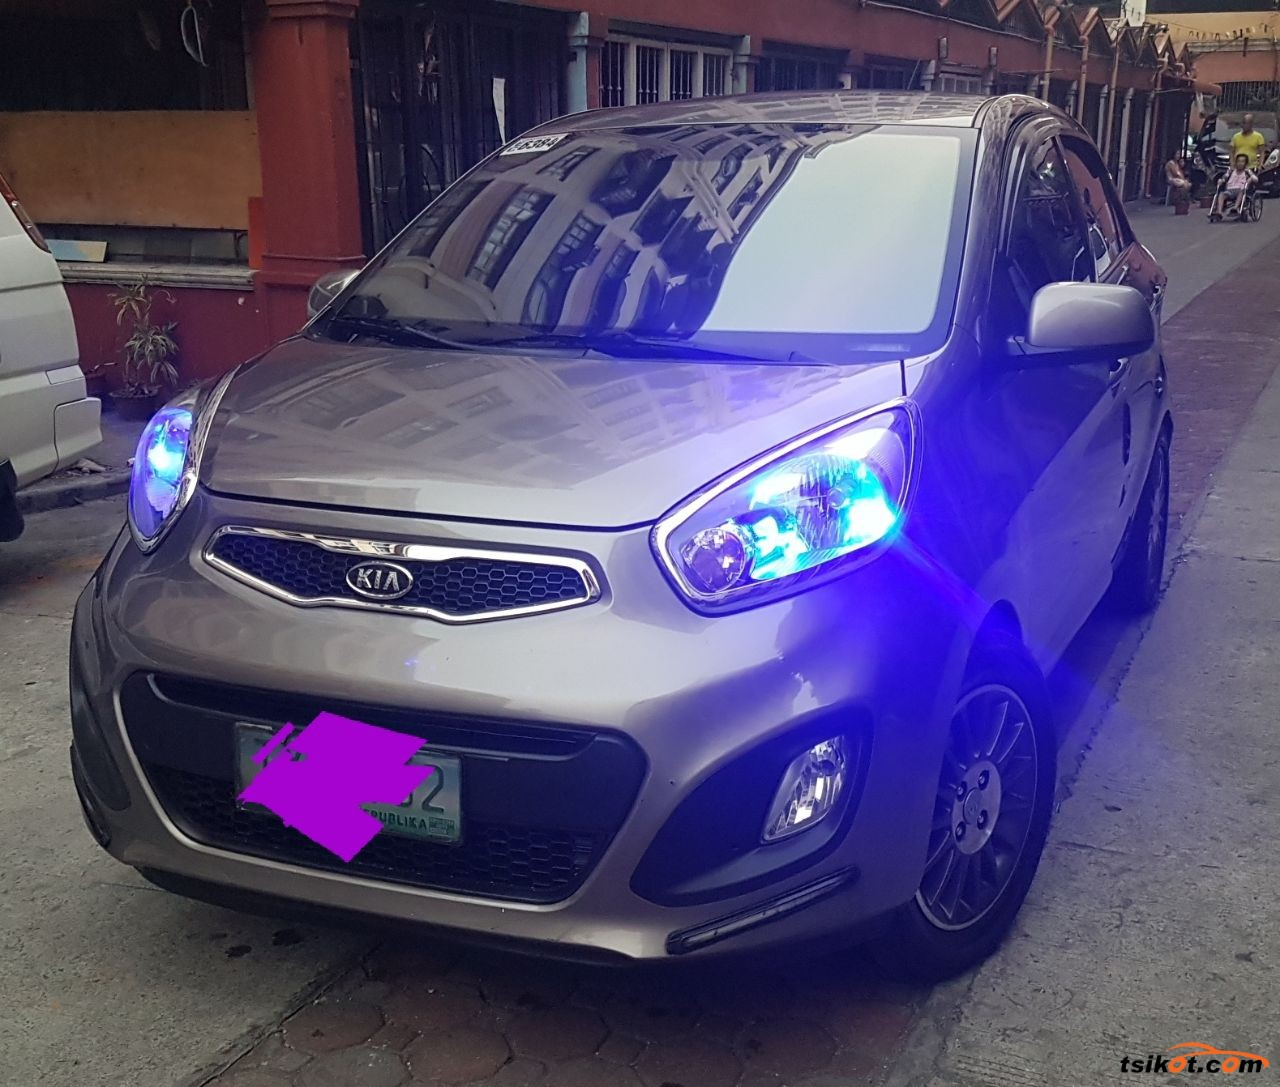 kia picanto 2011 car for sale metro manila philippines. Black Bedroom Furniture Sets. Home Design Ideas